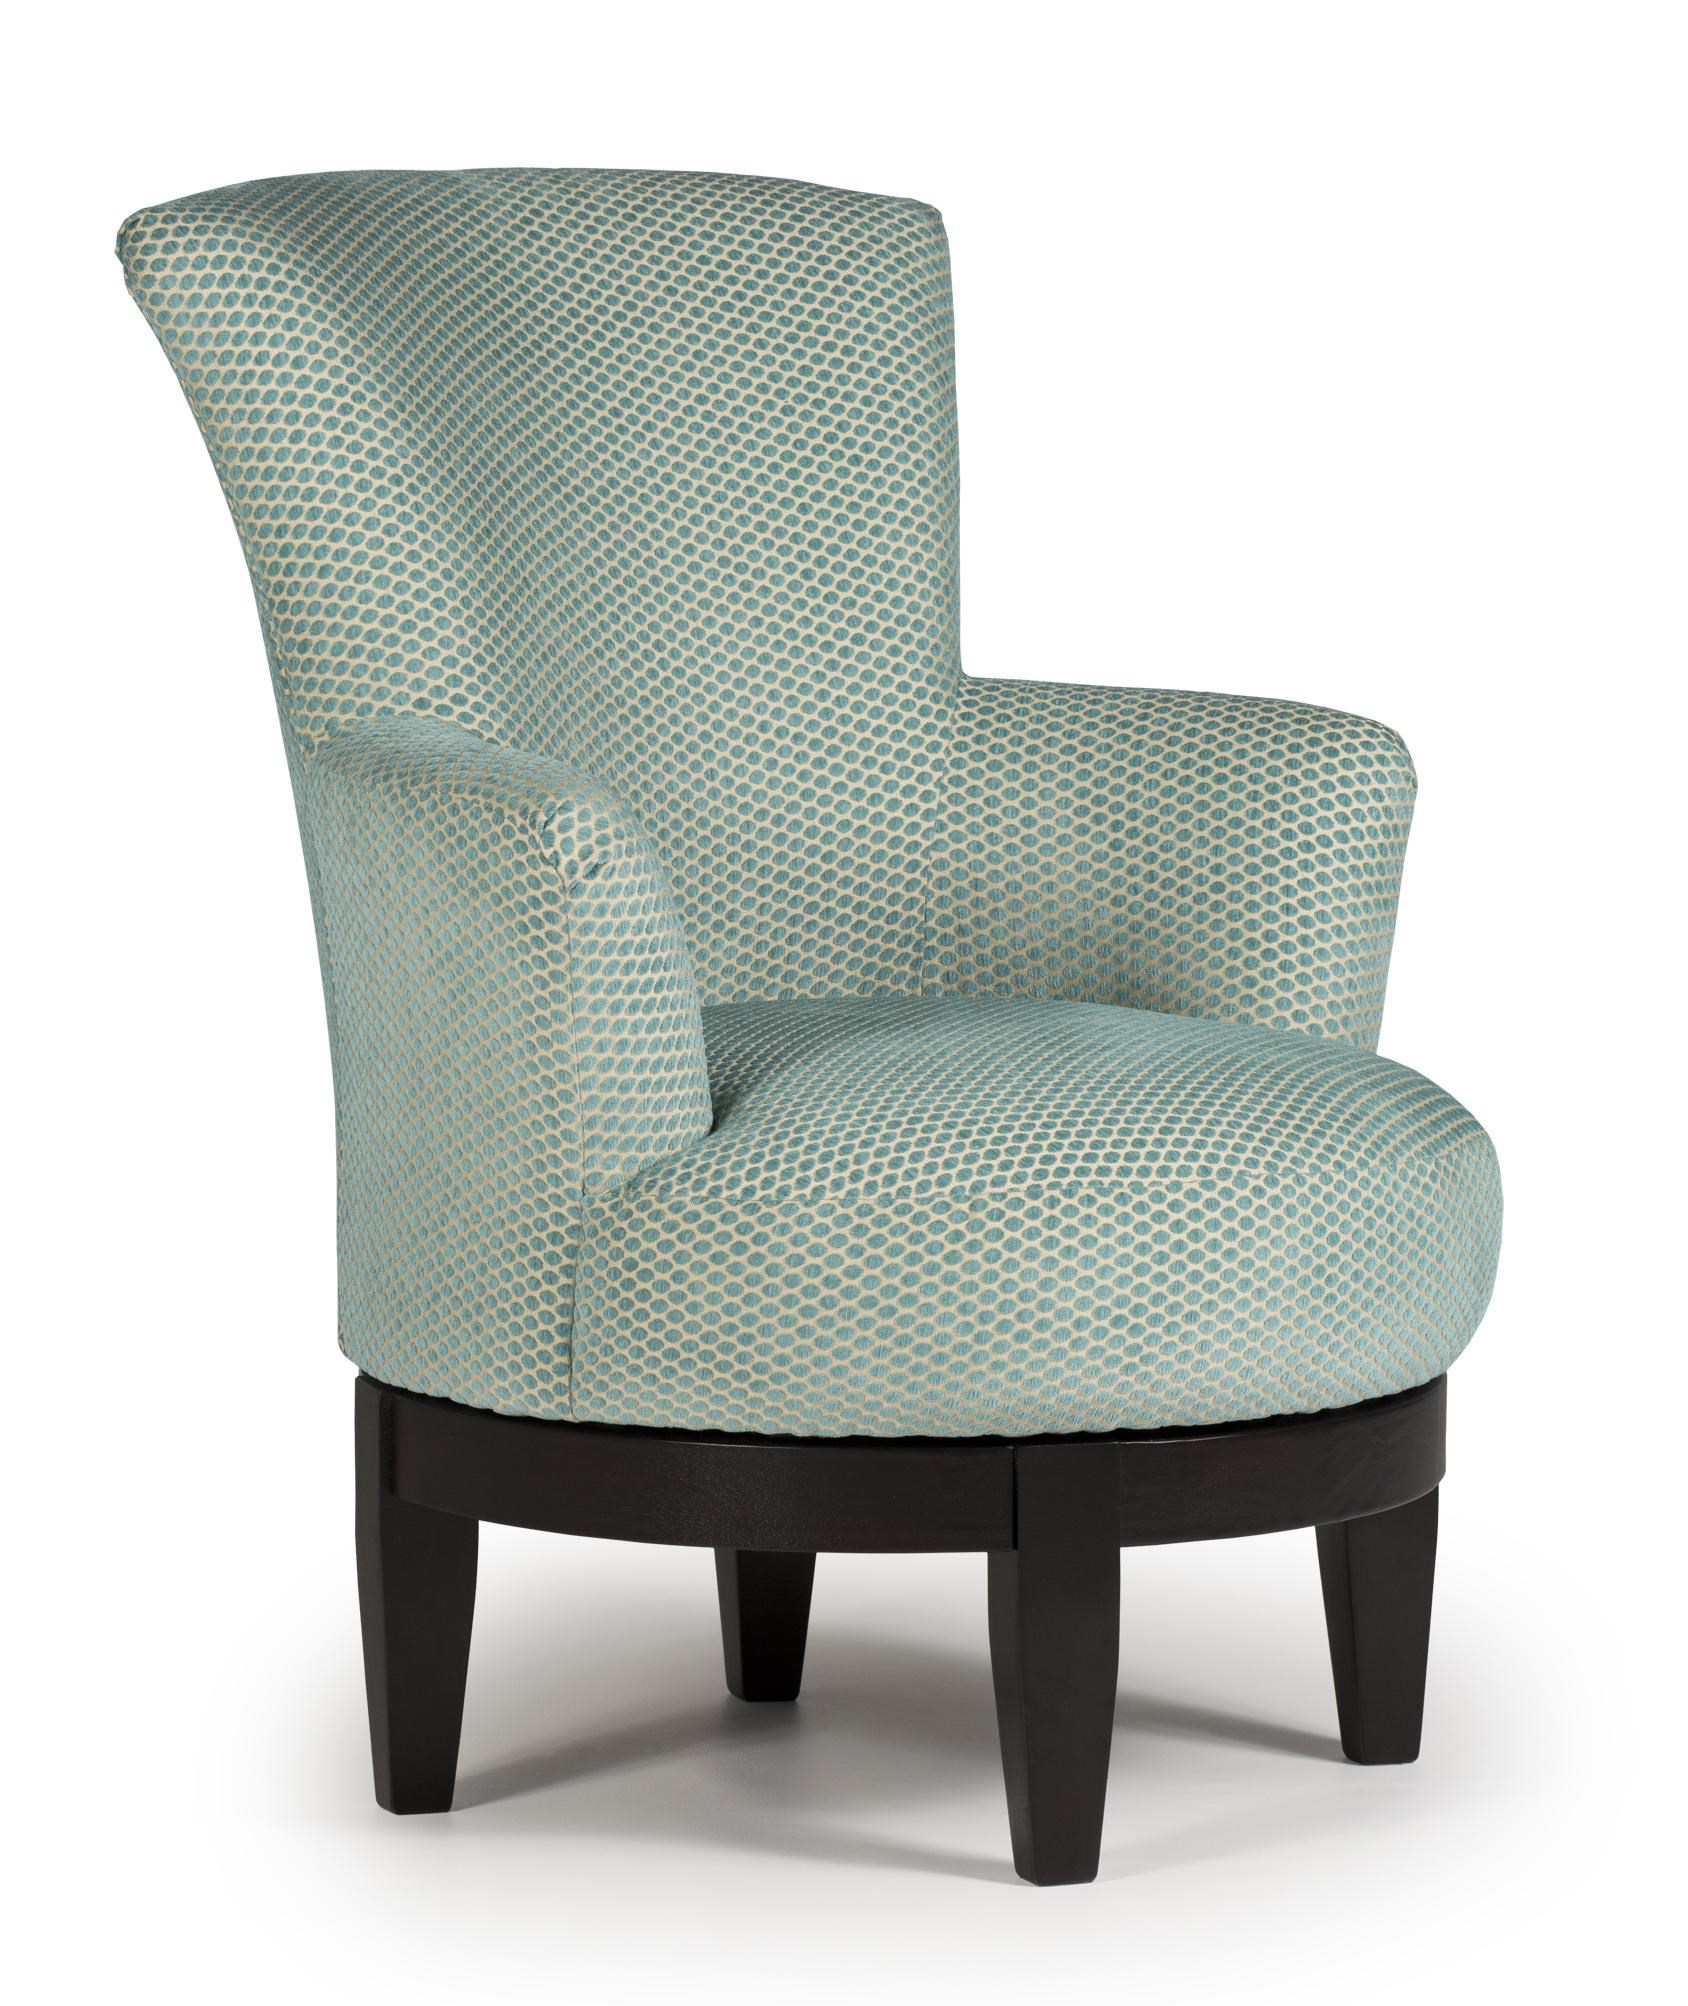 Exceptionnel Best Home Furnishings Chairs   Swivel Barrel Justine Swivel Chair With  Chic, Flared Arms